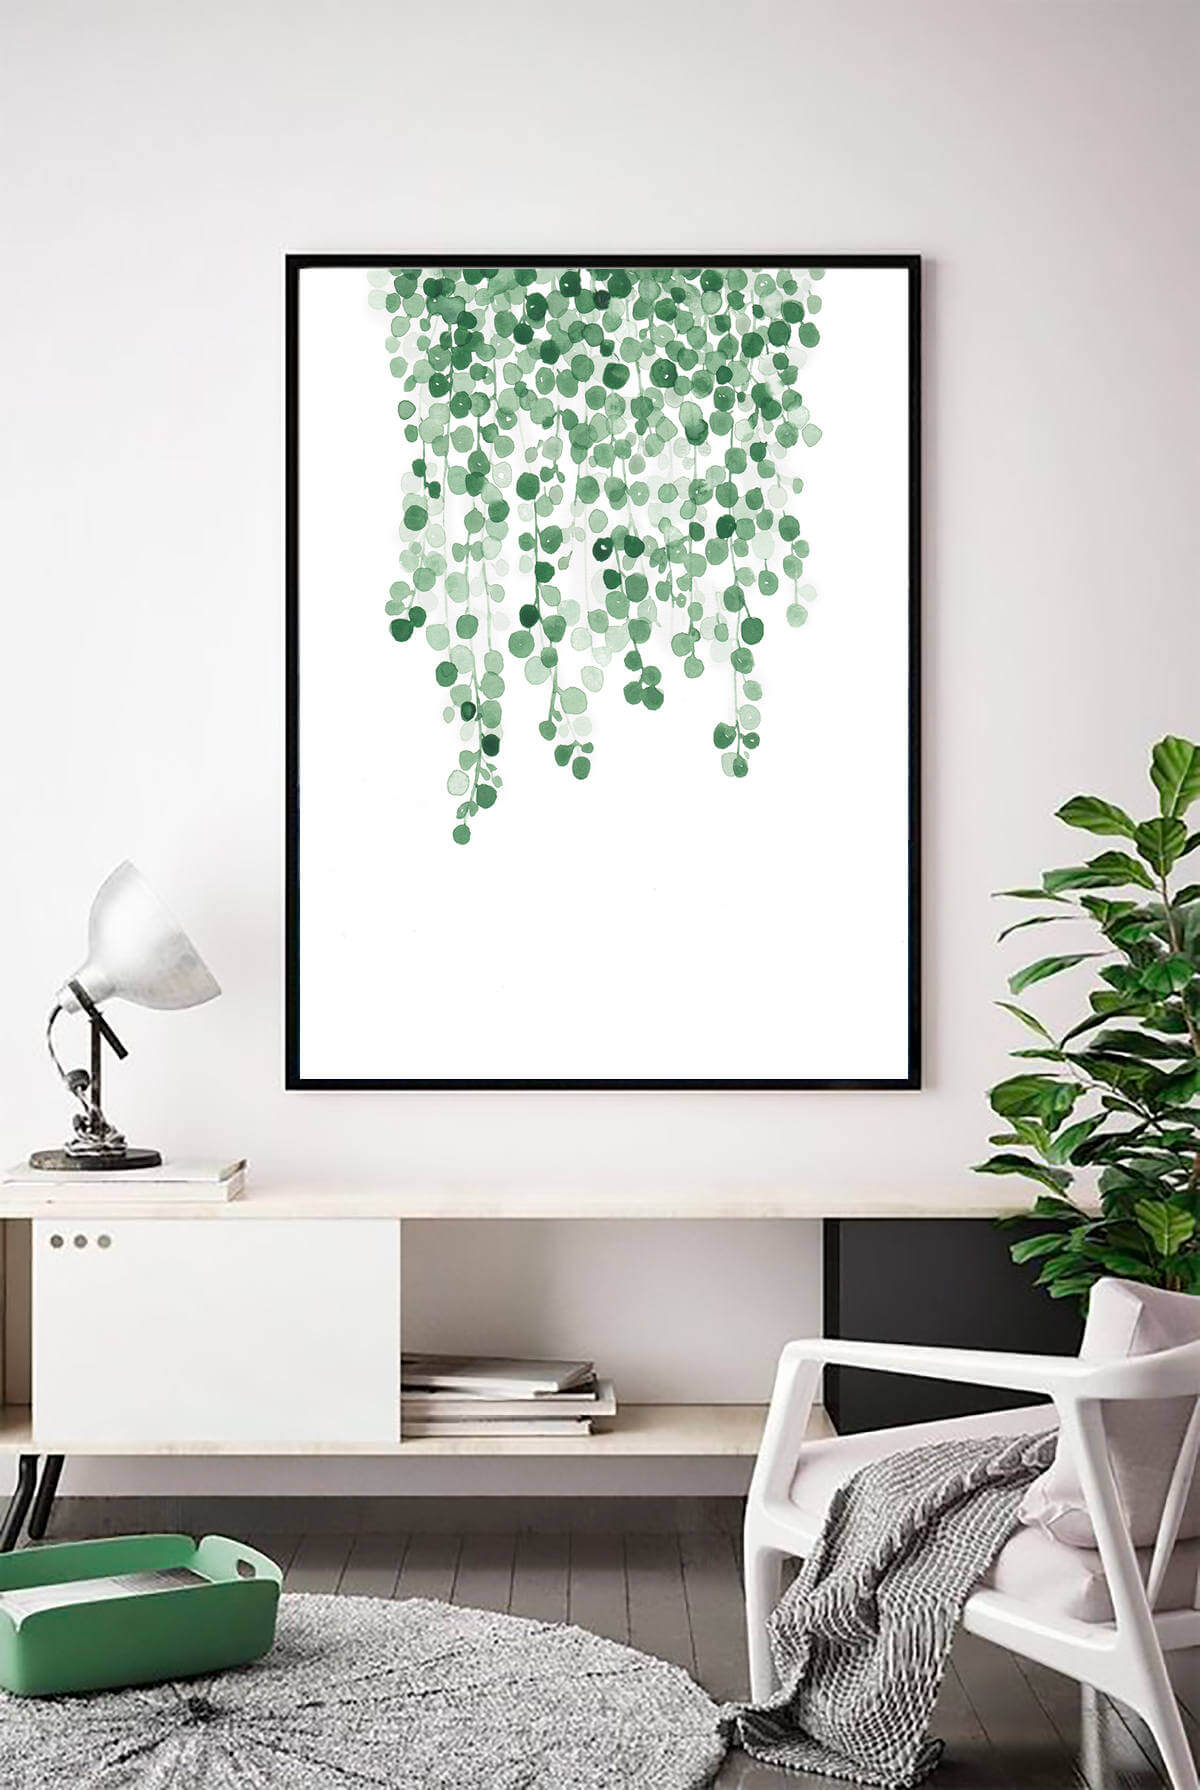 Botanical Art Adds a Pop of Color